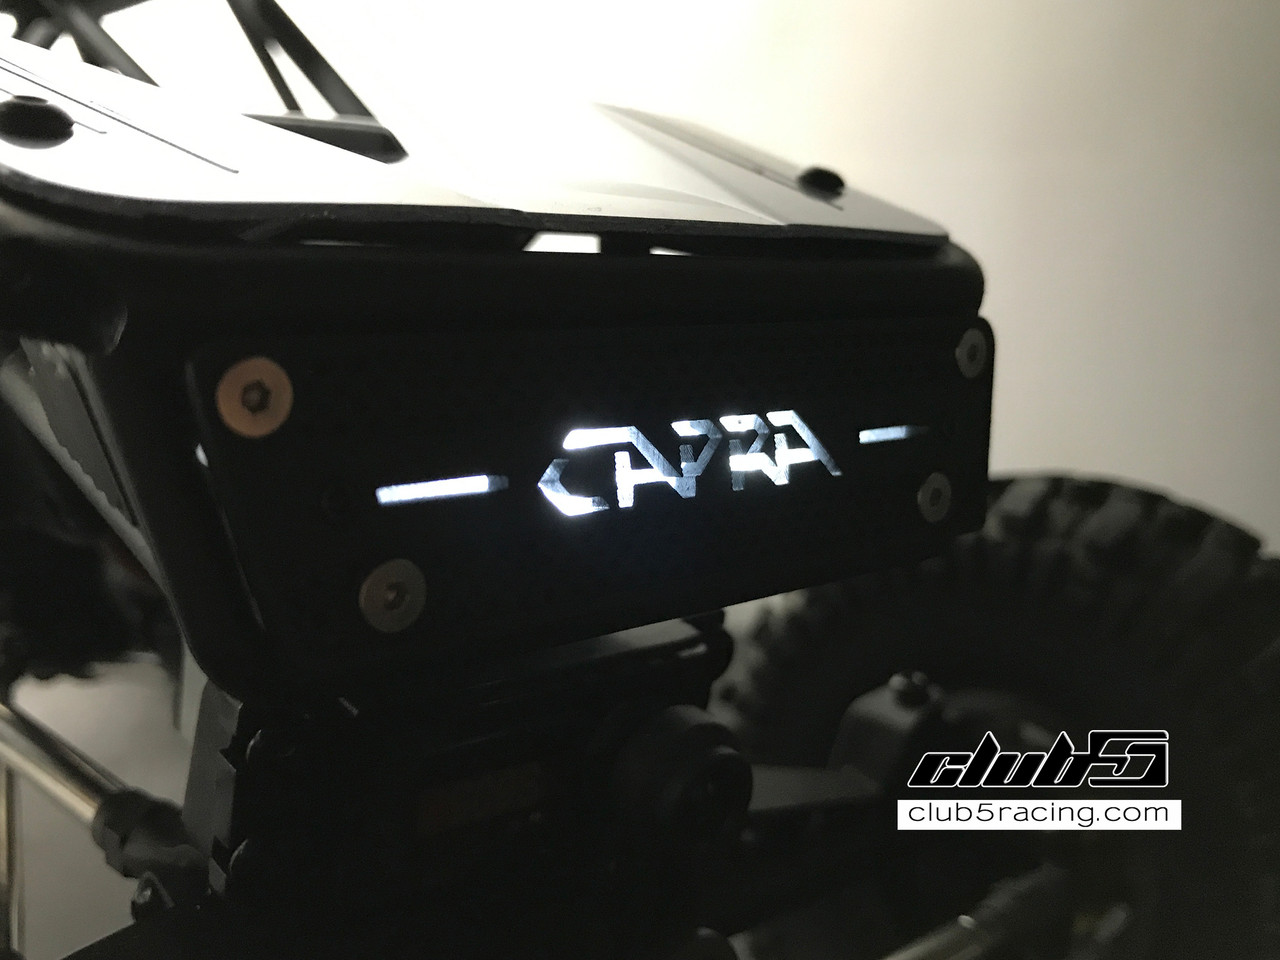 Front Grill w/ LED Lighting for Axial Capra